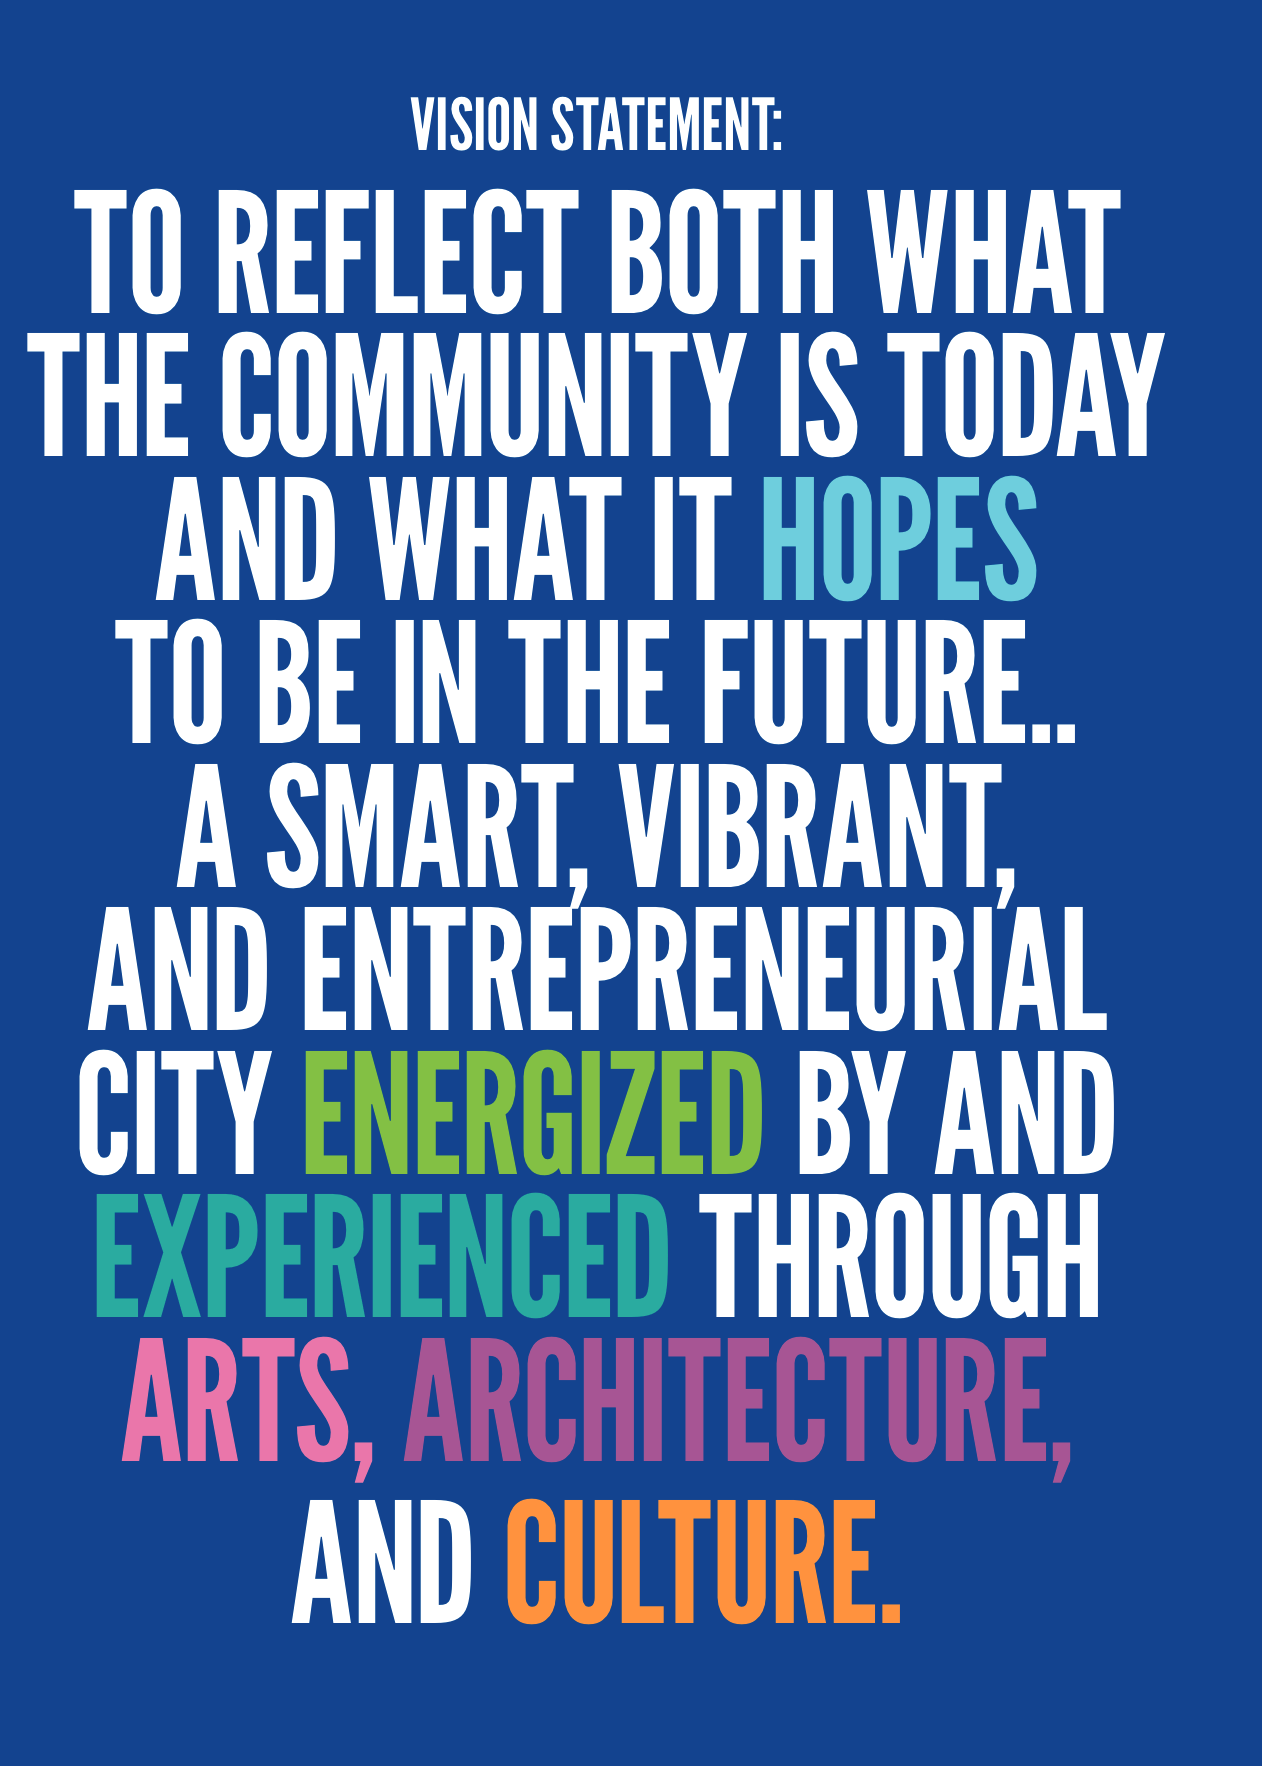 To reflect both what the community is today what it hopes to be in the future… A Smart, Vibrant, and Entrepreneurial City energized by and experienced through Arts, Architecture, and Culture.